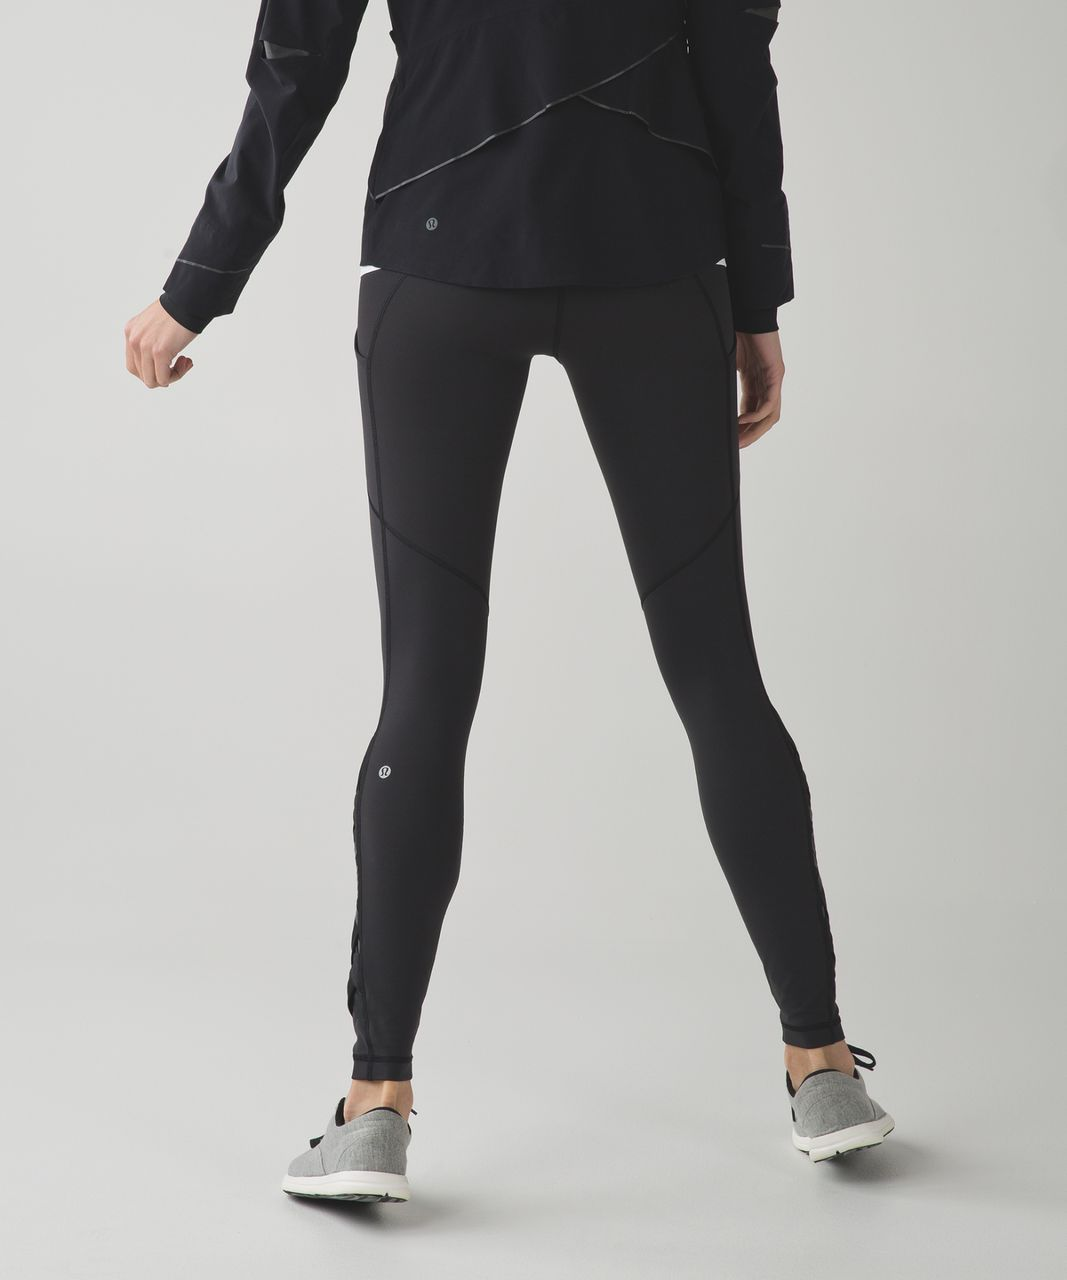 Lululemon Speed Tight IV (Full-On Luxtreme) *Weave - Black